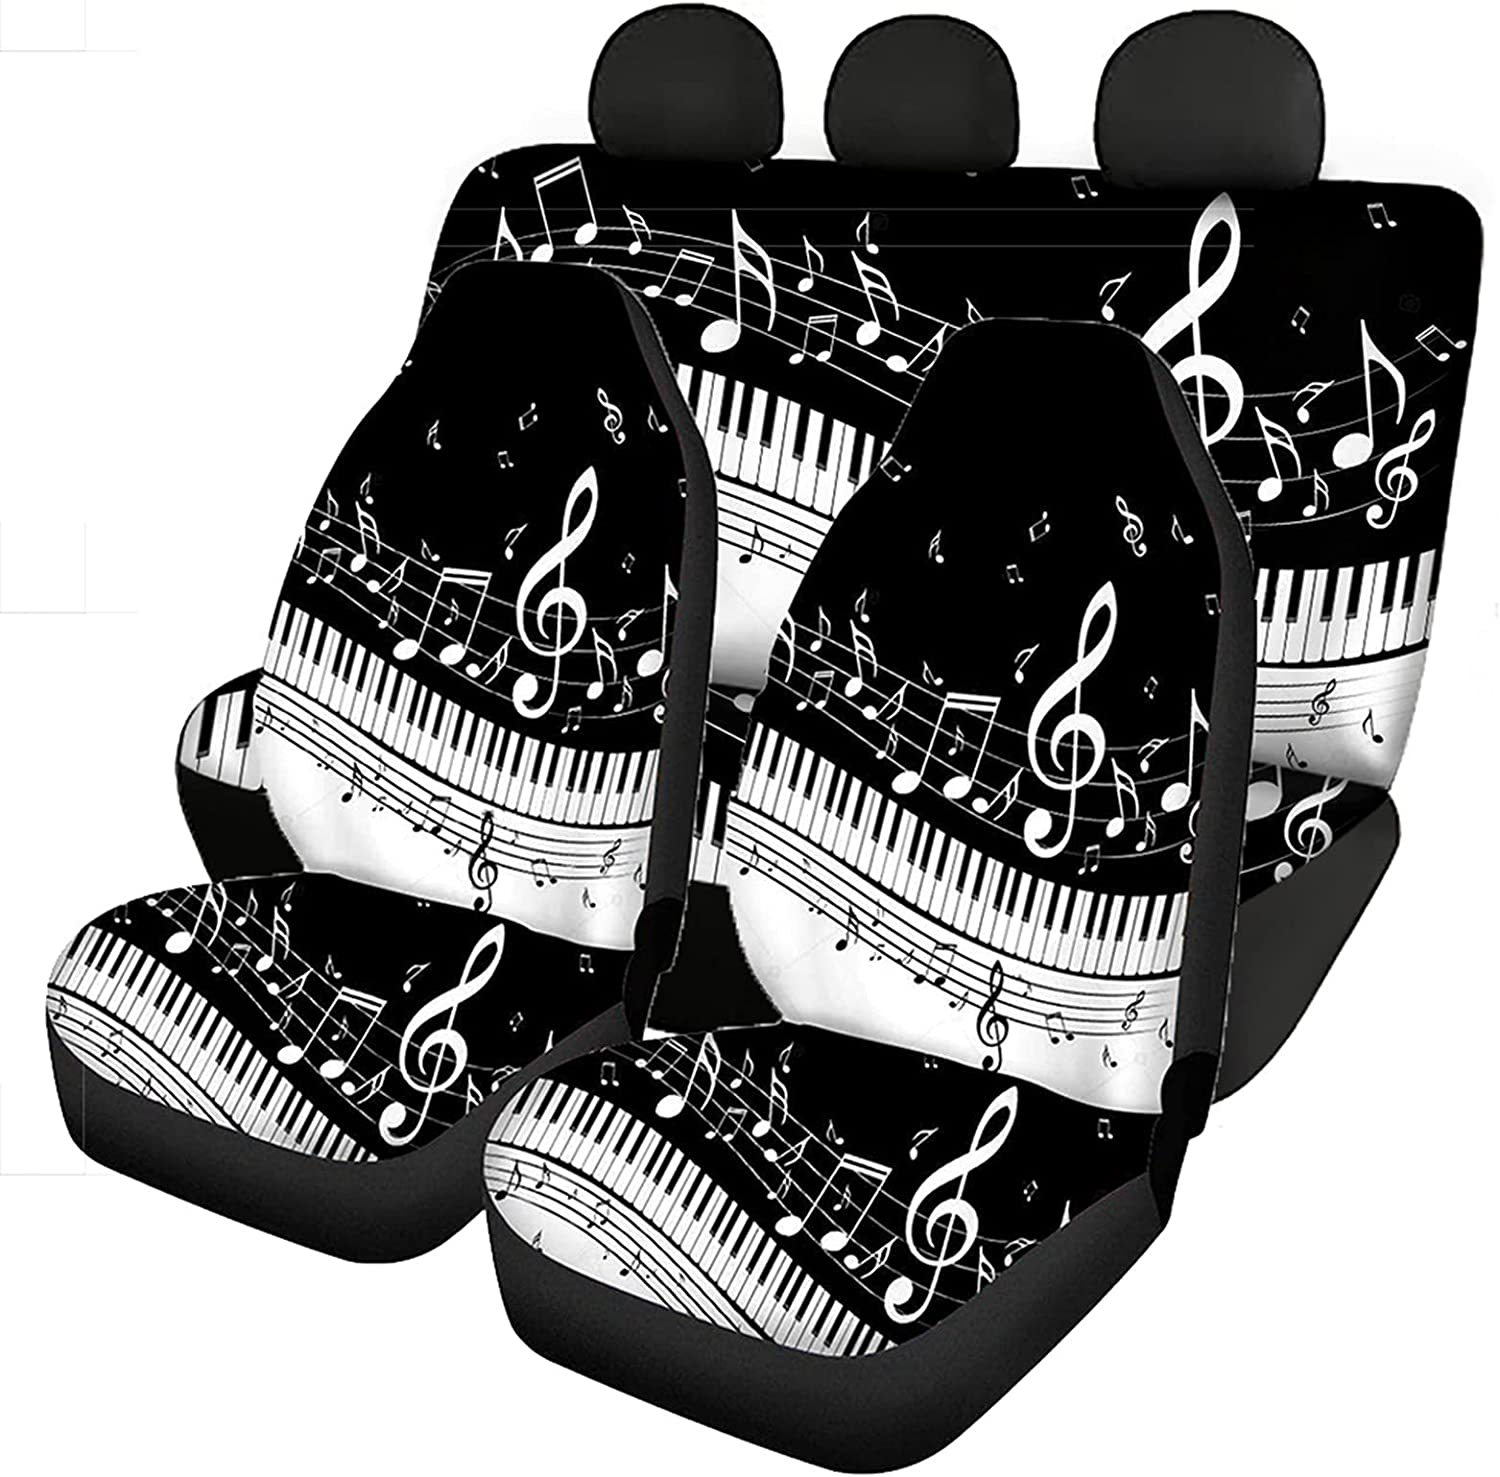 Tobiunik Piano with Music Notes Finally resale start Design Cheap super special price Universal Car Co Fit Seat